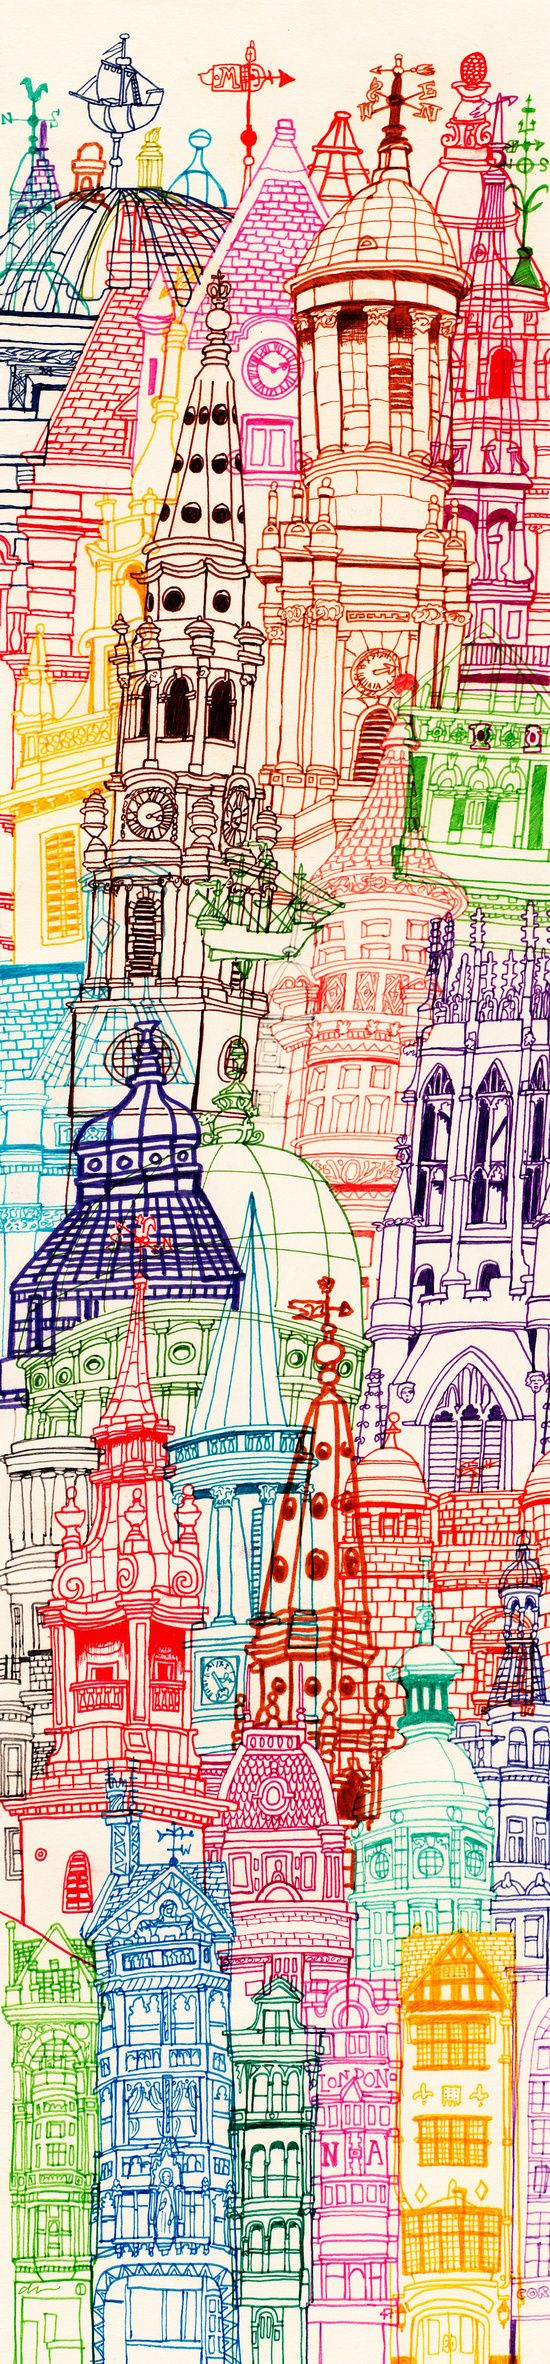 London Towers Art Print by Cheism